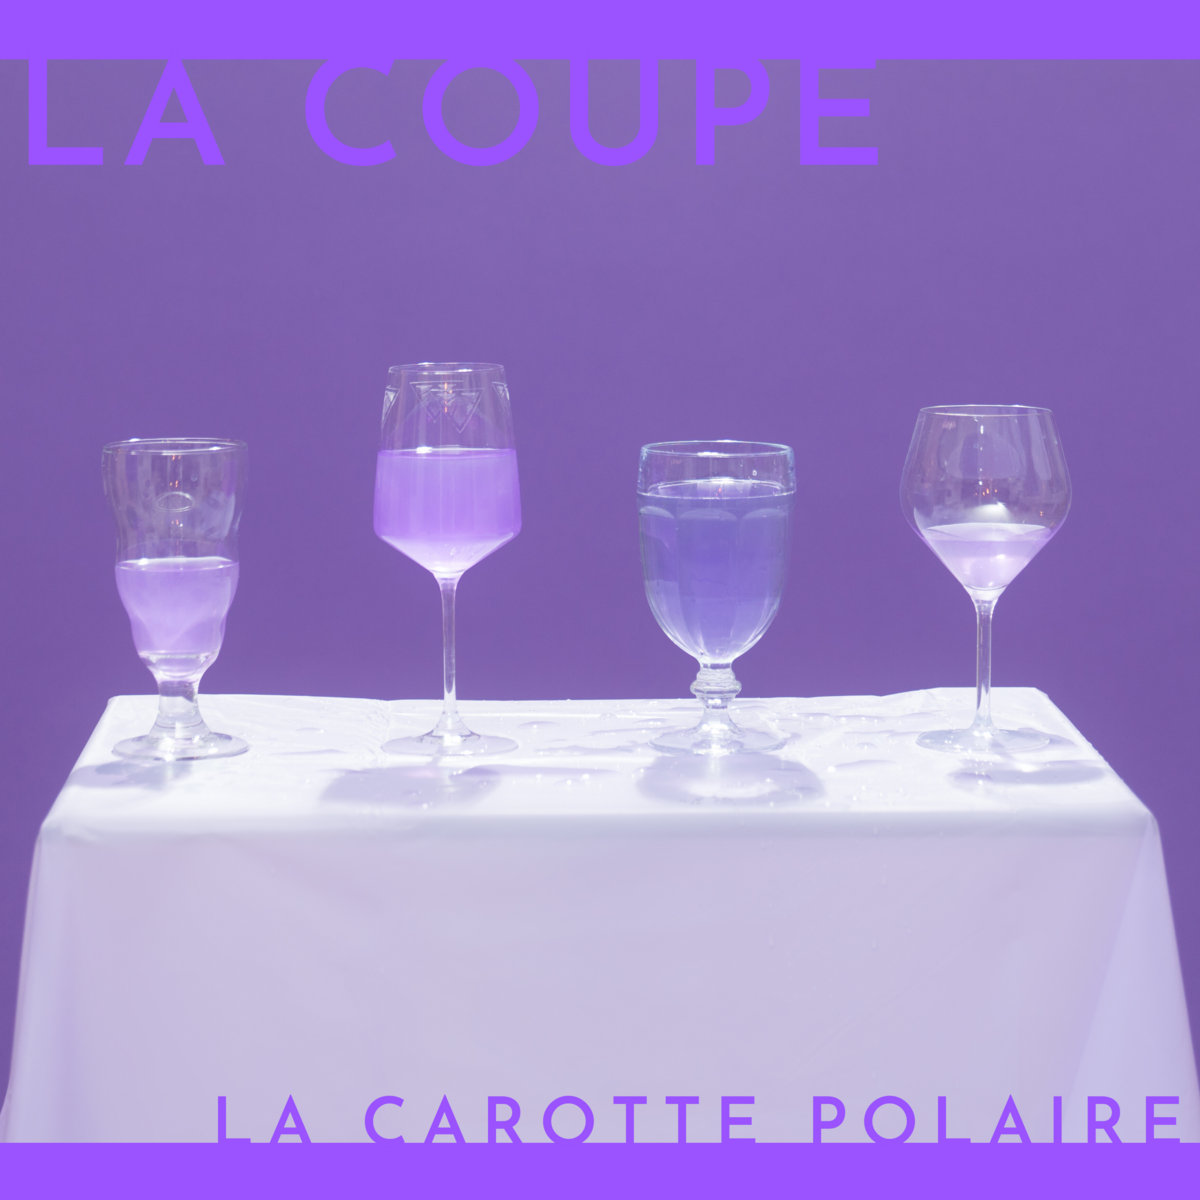 La Coupe by La Carotte Polaire